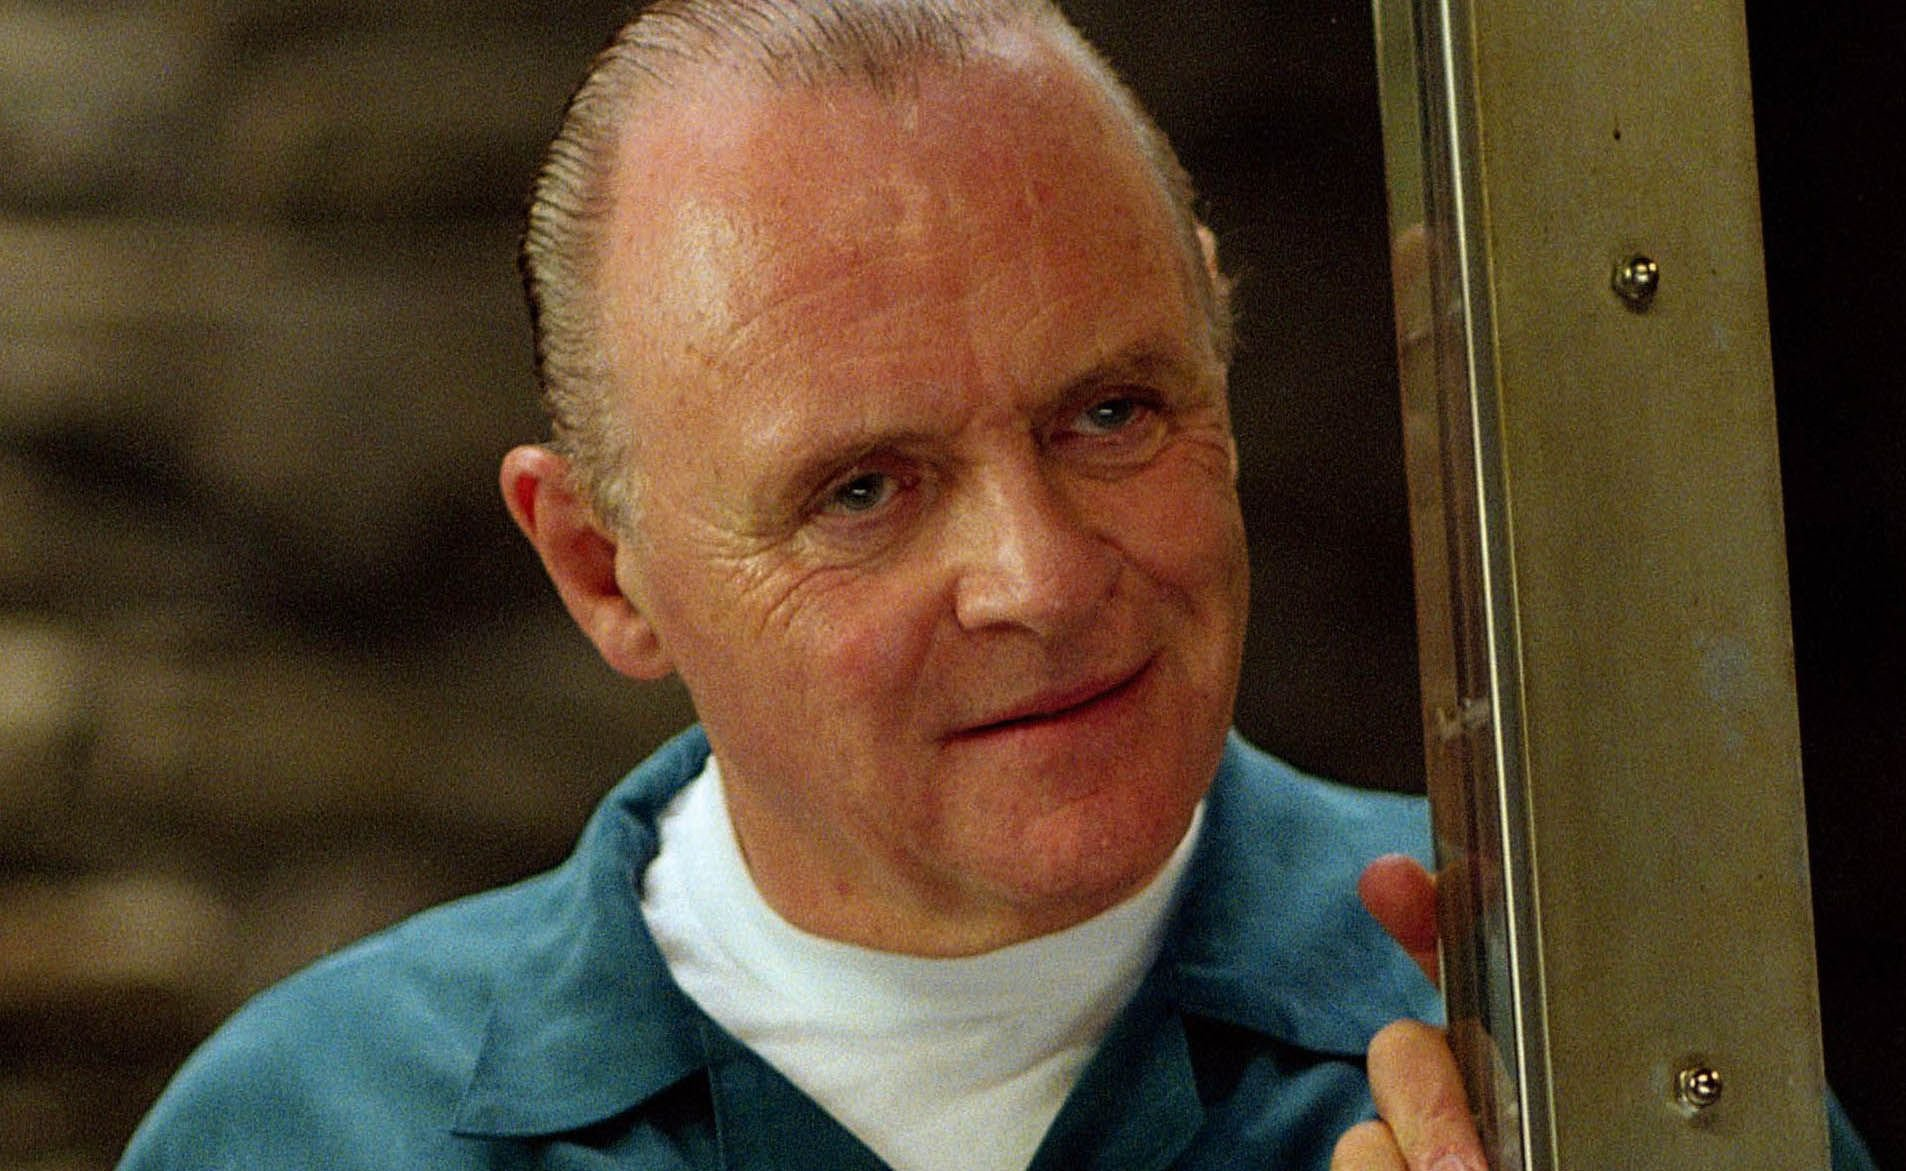 Anthony Hopkins as Hannibal Lecter in Red Dragon. Lecter, now an old man, stands up close to the camera, staring forward with a menacing smile.